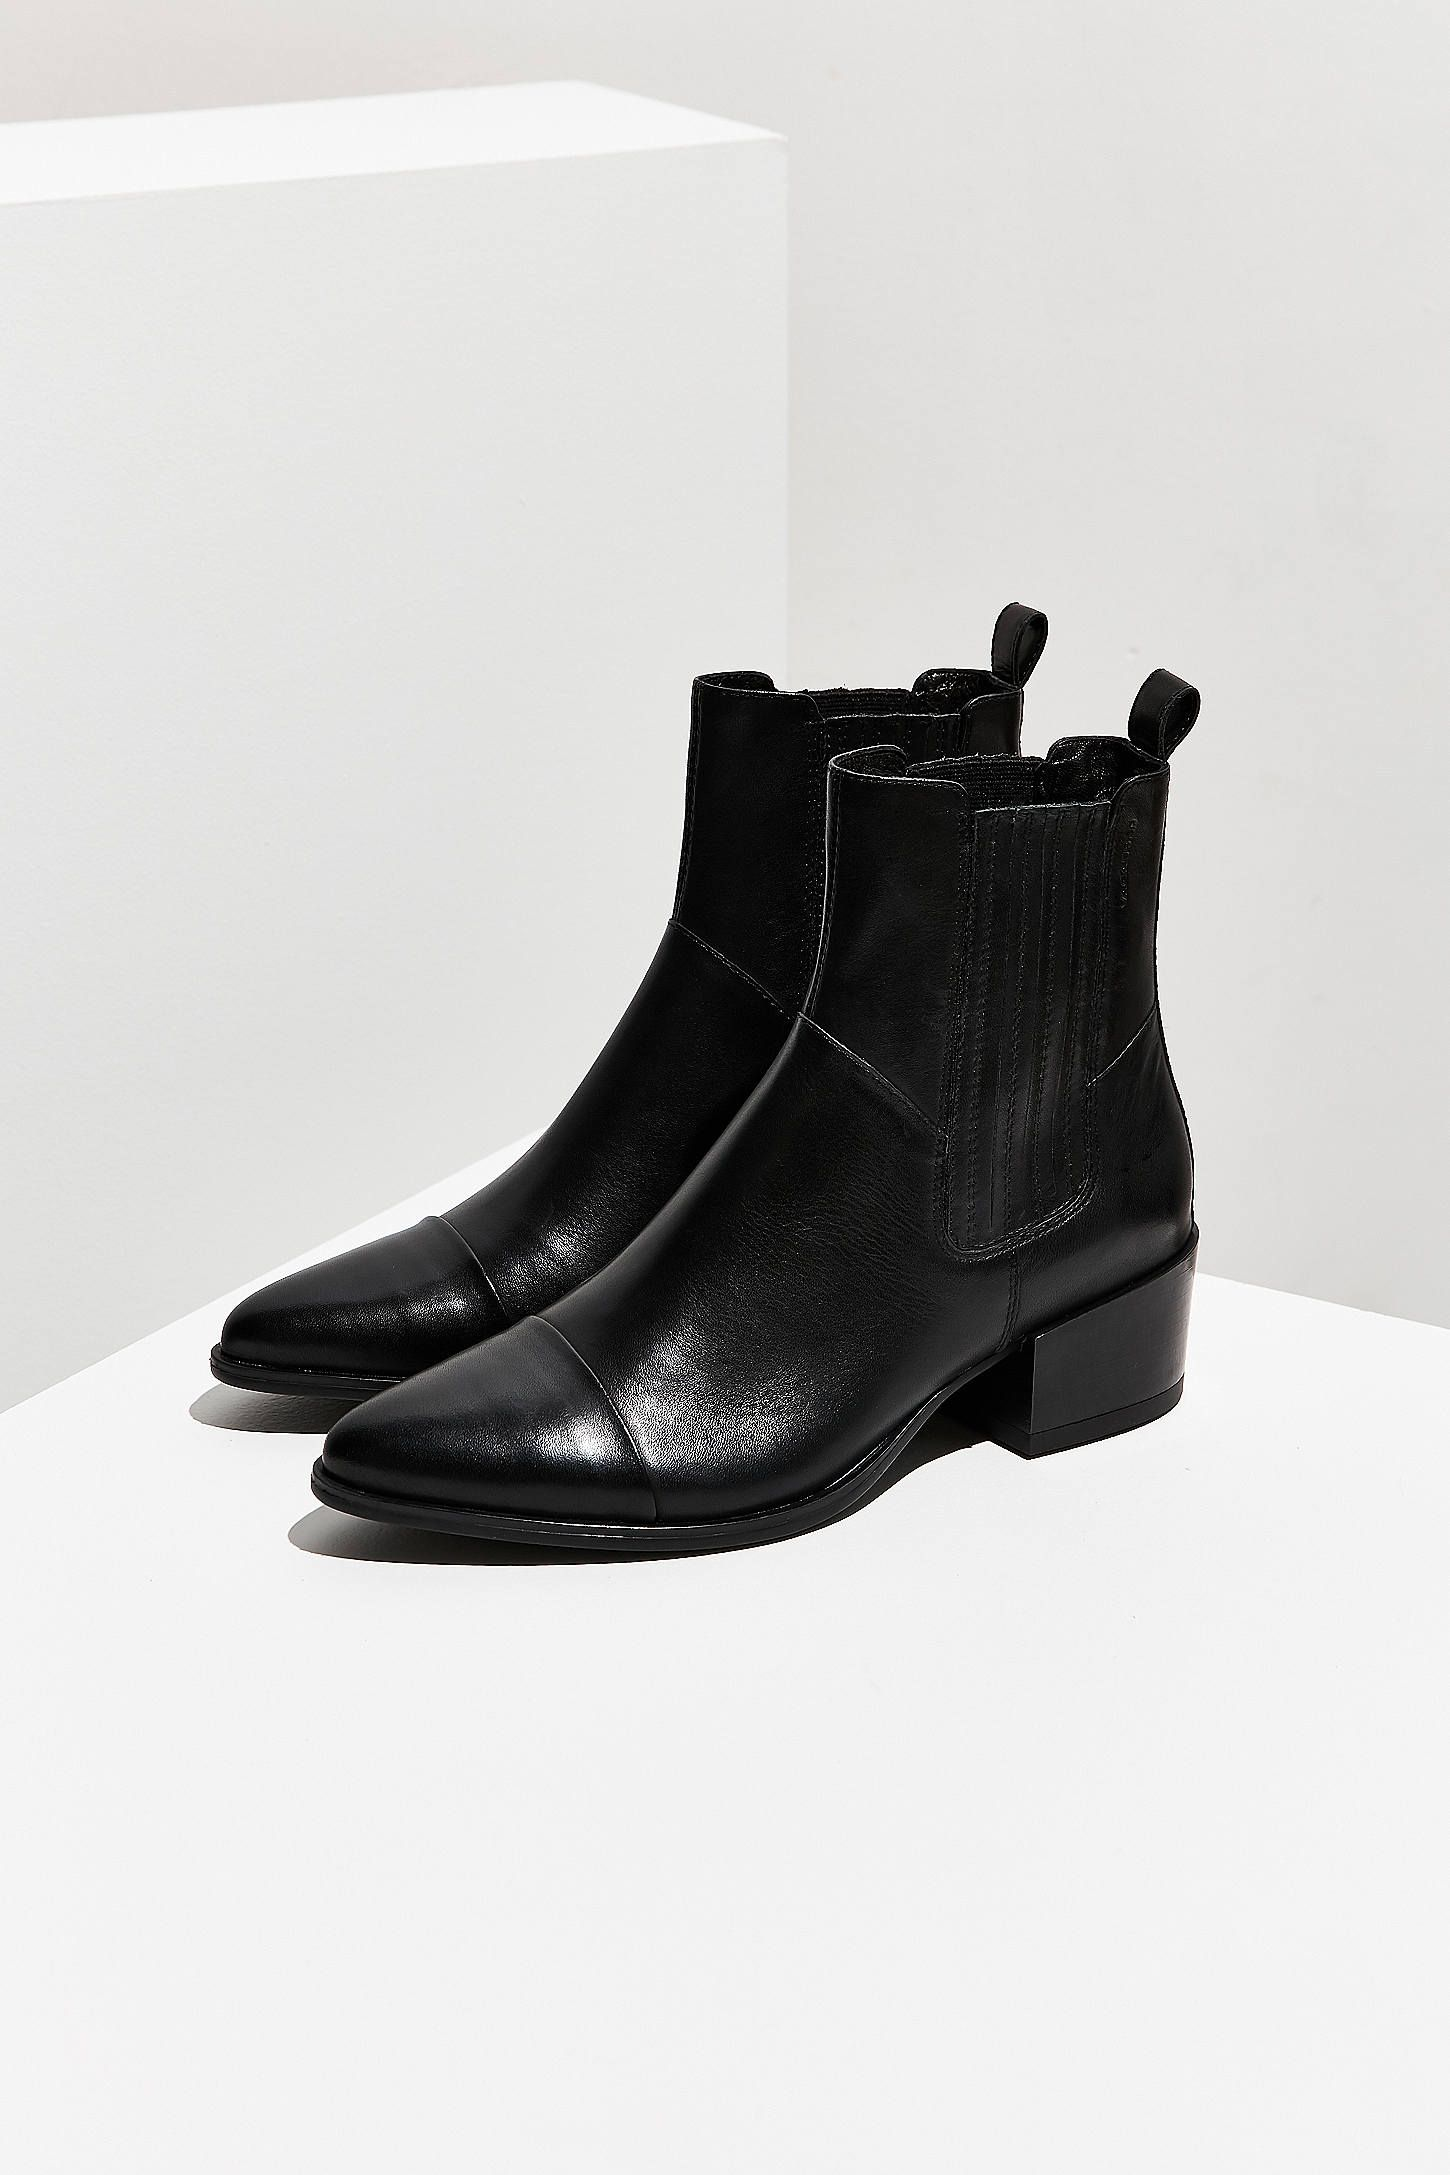 d574caef0 Shop Vagabond Marja Chelsea Boot at Urban Outfitters today. We carry all  the latest styles, colors and brands for you to choose from right here.